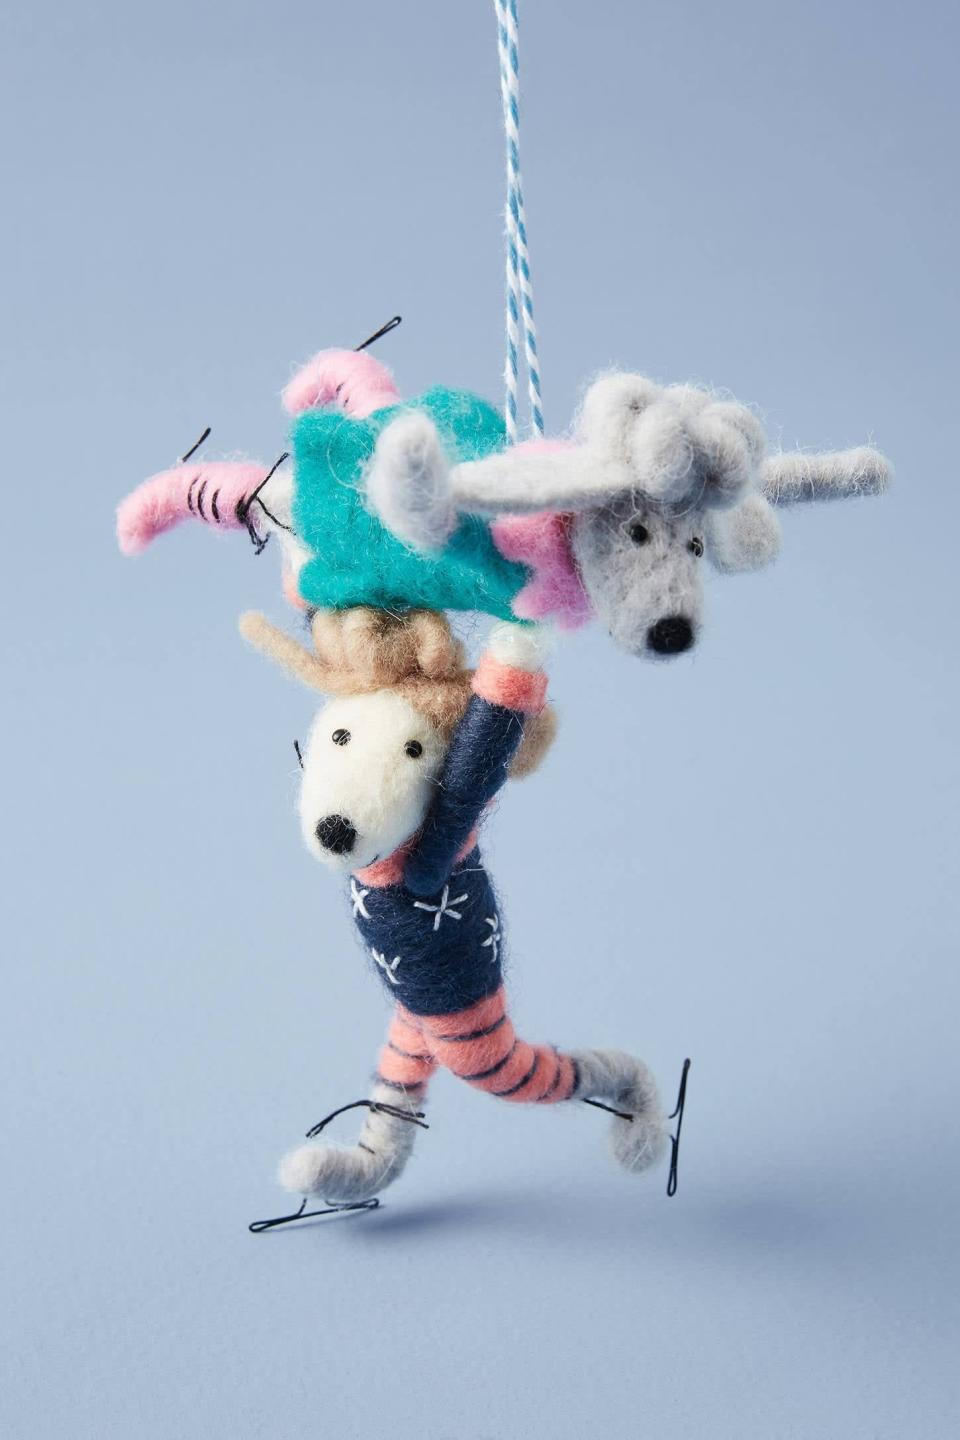 """<p>Give your tree whimsical flair with this <a href=""""https://www.popsugar.com/buy/Ice-Skating-Poodles-Ornament-490547?p_name=Ice%20Skating%20Poodles%20Ornament&retailer=anthropologie.com&pid=490547&price=24&evar1=casa%3Aus&evar9=46615300&evar98=https%3A%2F%2Fwww.popsugar.com%2Fhome%2Fphoto-gallery%2F46615300%2Fimage%2F46615418%2FIce-Skating-Poodles-Ornament&list1=shopping%2Canthropologie%2Choliday%2Cchristmas%2Cchristmas%20decorations%2Choliday%20decor%2Chome%20shopping&prop13=mobile&pdata=1"""" rel=""""nofollow noopener"""" class=""""link rapid-noclick-resp"""" target=""""_blank"""" data-ylk=""""slk:Ice Skating Poodles Ornament"""">Ice Skating Poodles Ornament</a> ($24).</p>"""